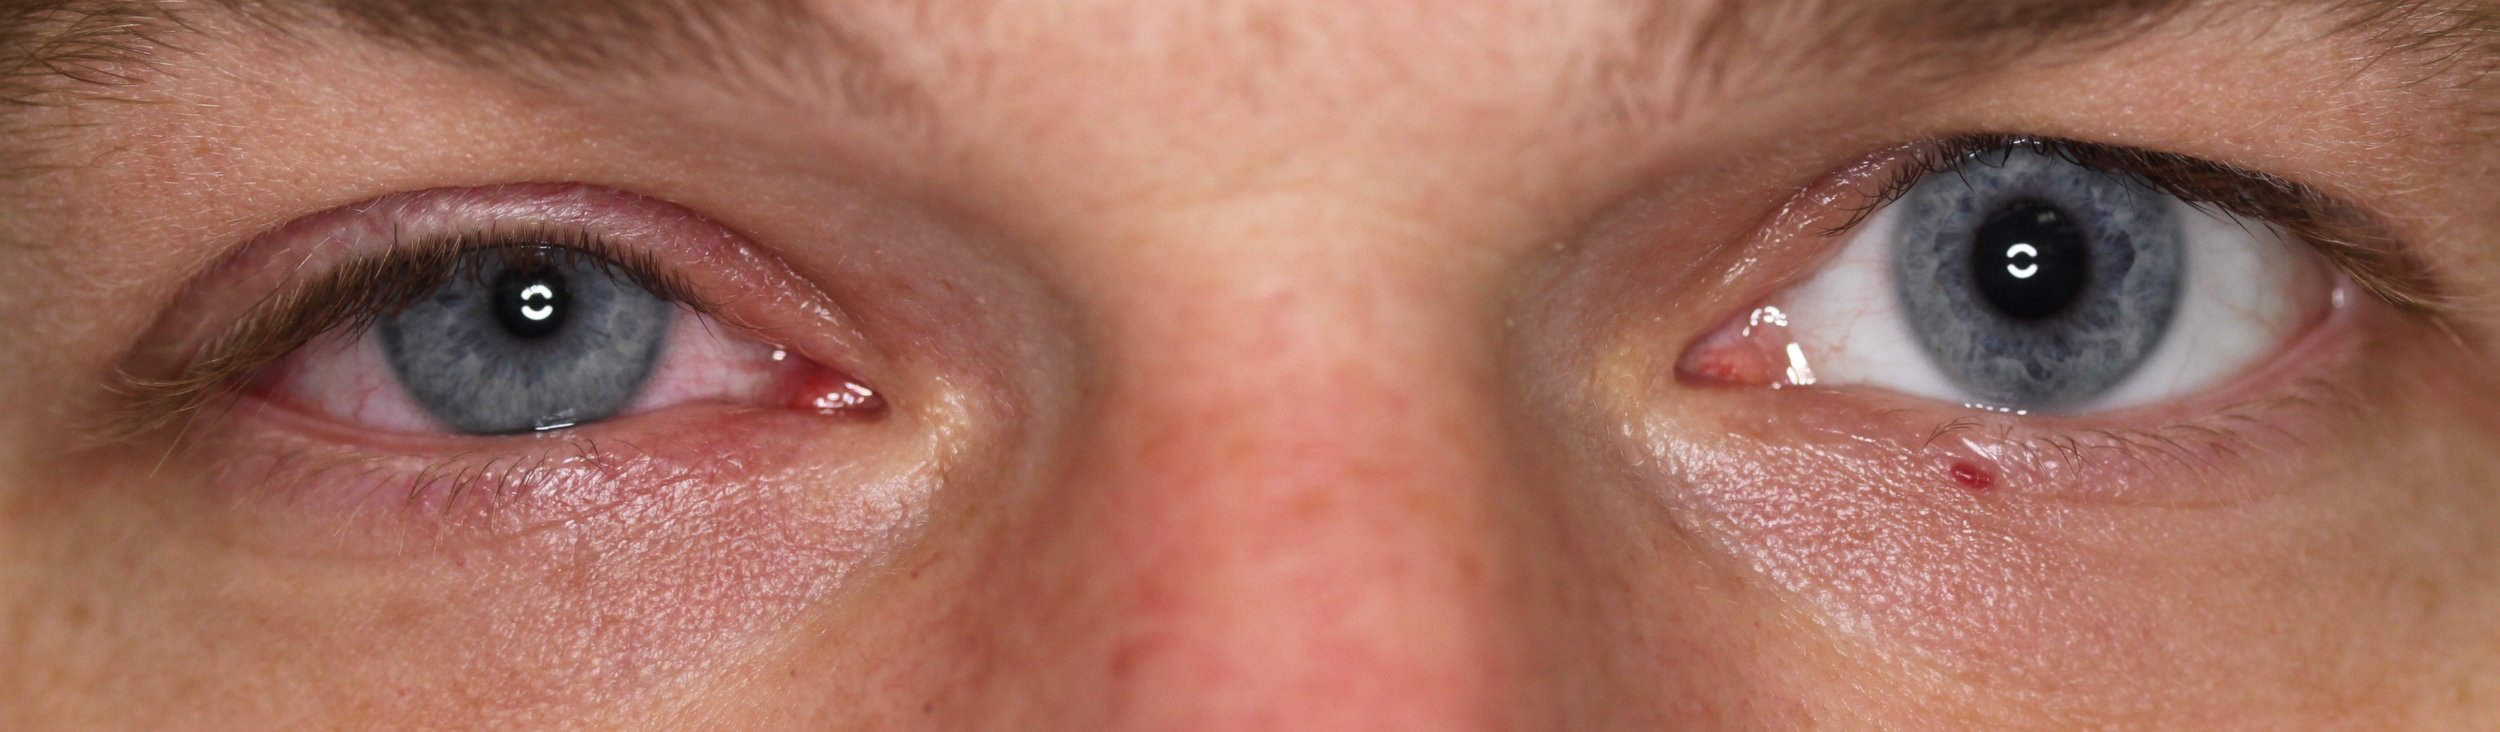 This is an example of a Horner's Syndrome after a Stellate Ganglion Block (SGB)